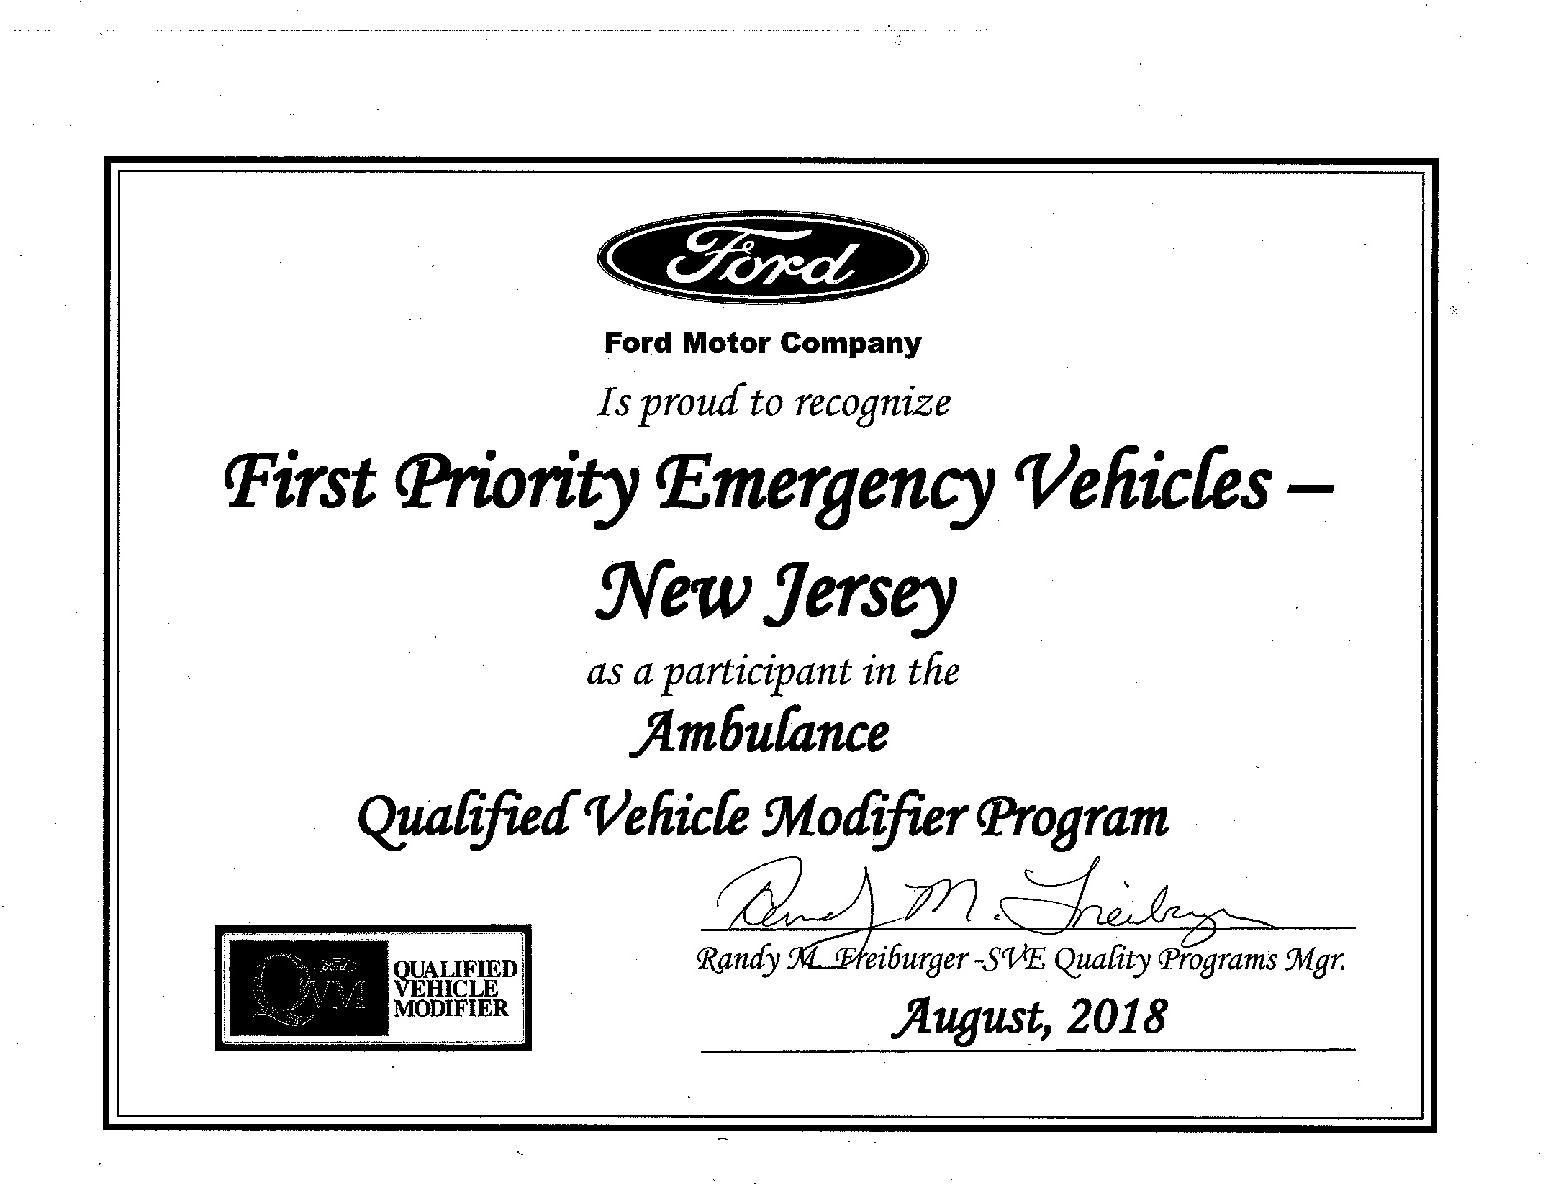 Ford QVM Certifcation 201810232018-001